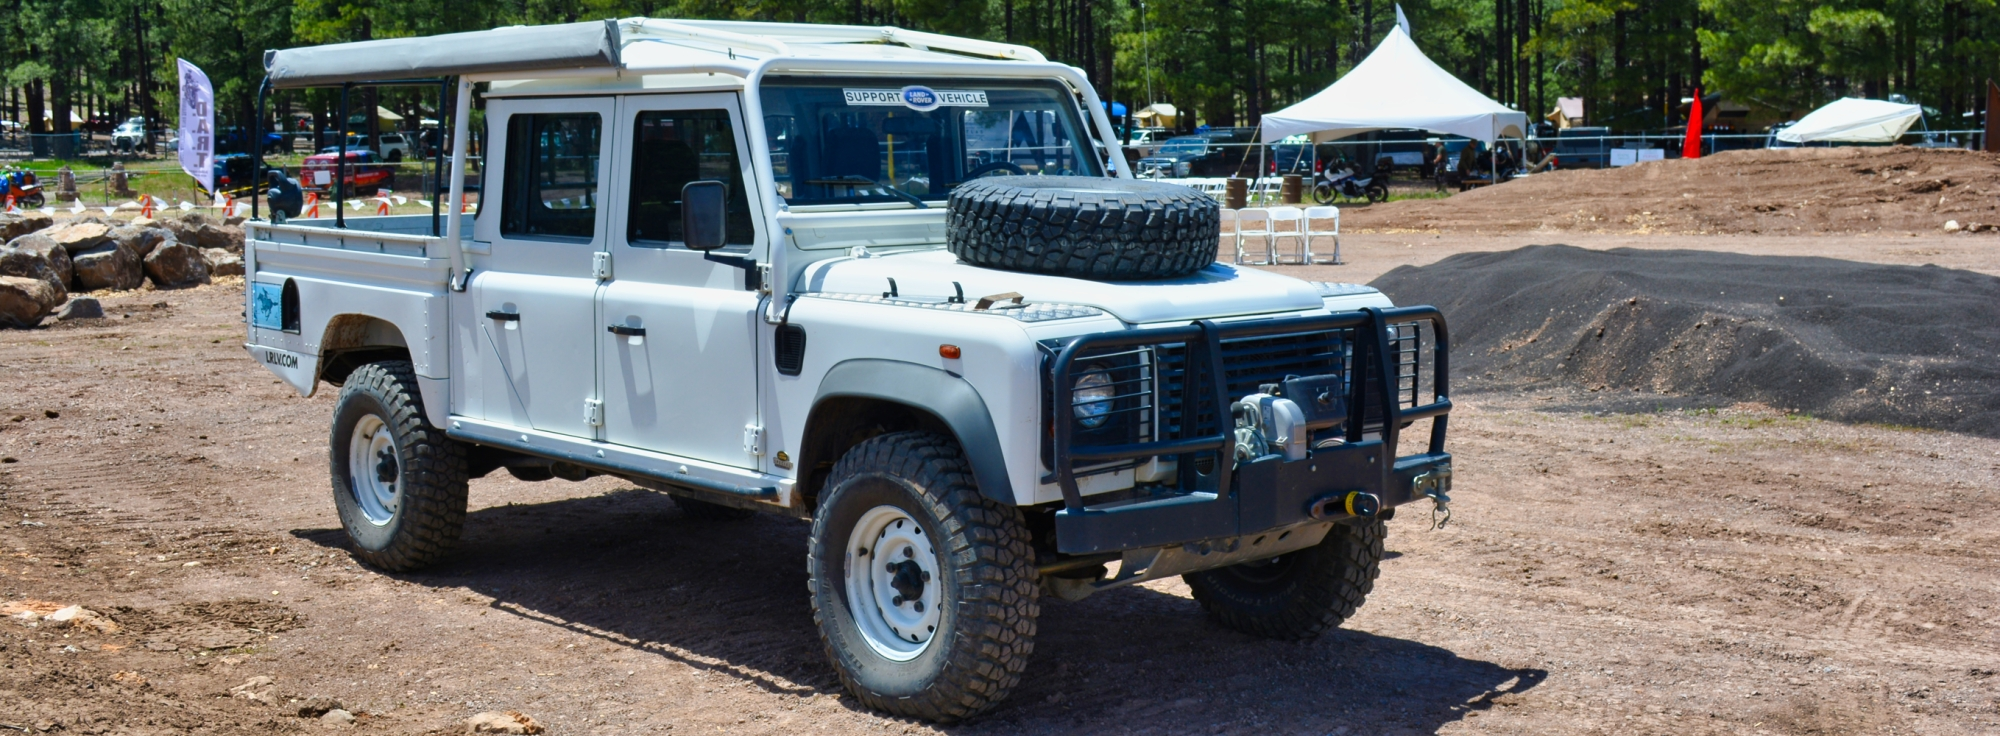 Overland Expo West >> Impressions The Overland Expo West 2019 Wildwood Expedition